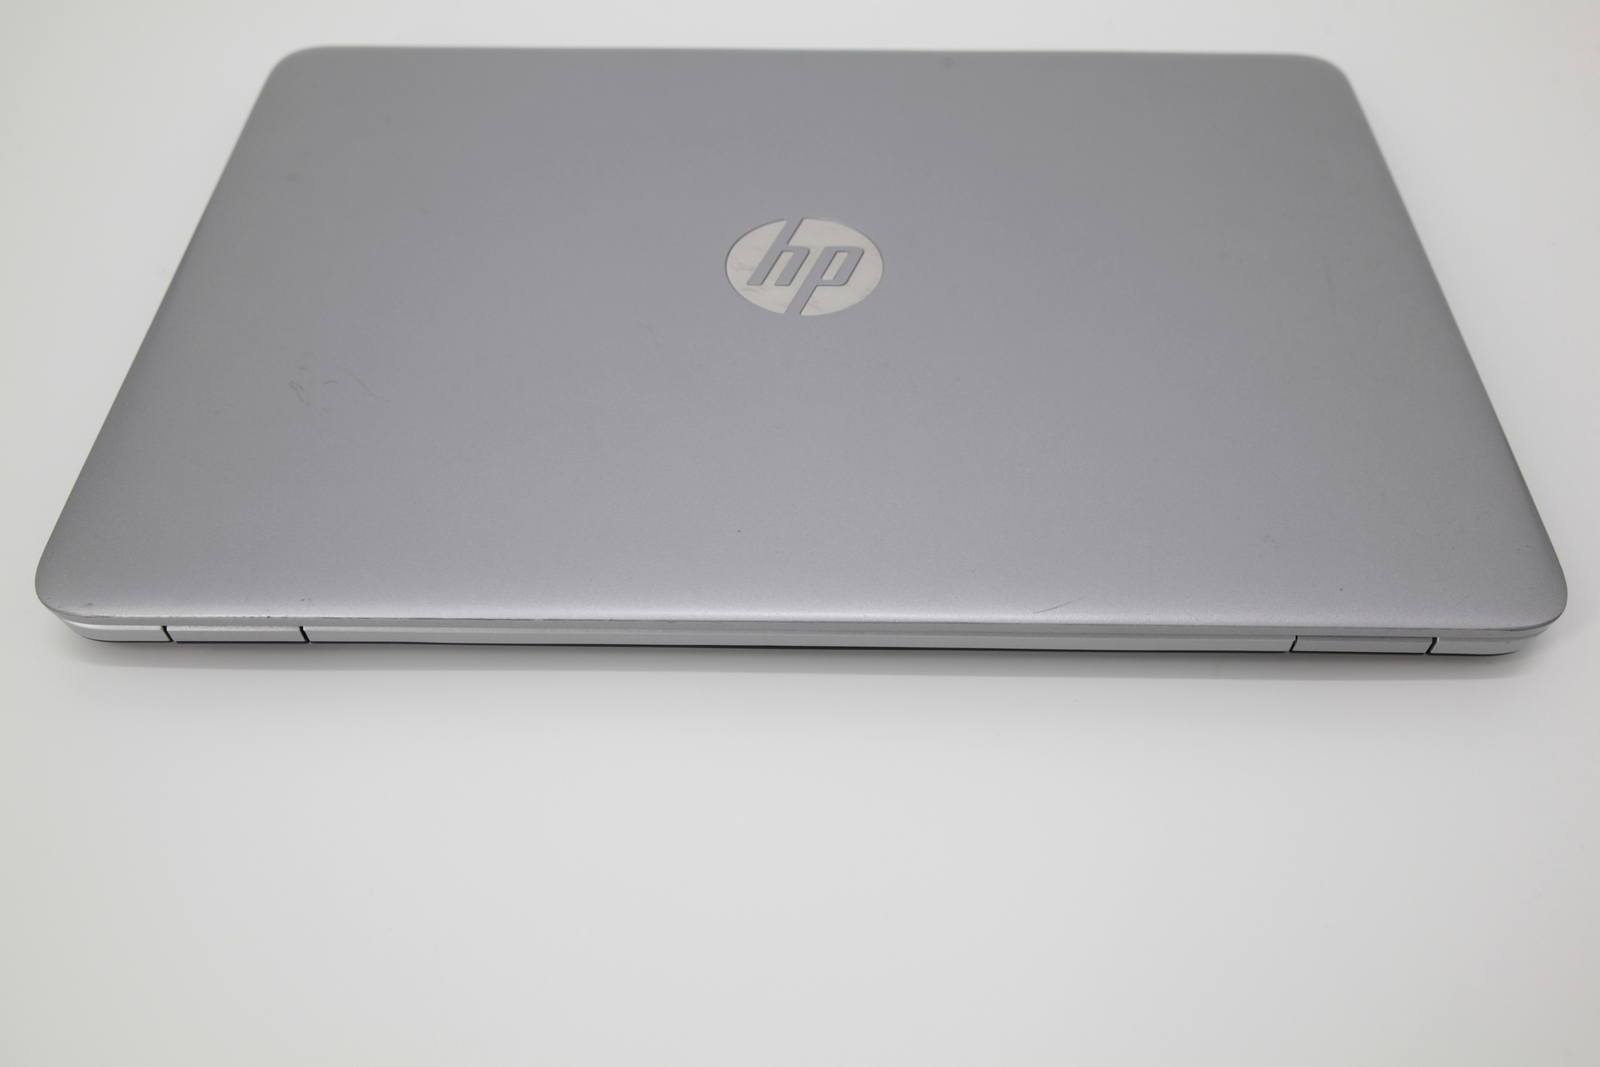 HP EliteBook 840 G4 Laptop: 7th Gen Core i5, 256GB 8GB Warranty VAT - CruiseTech